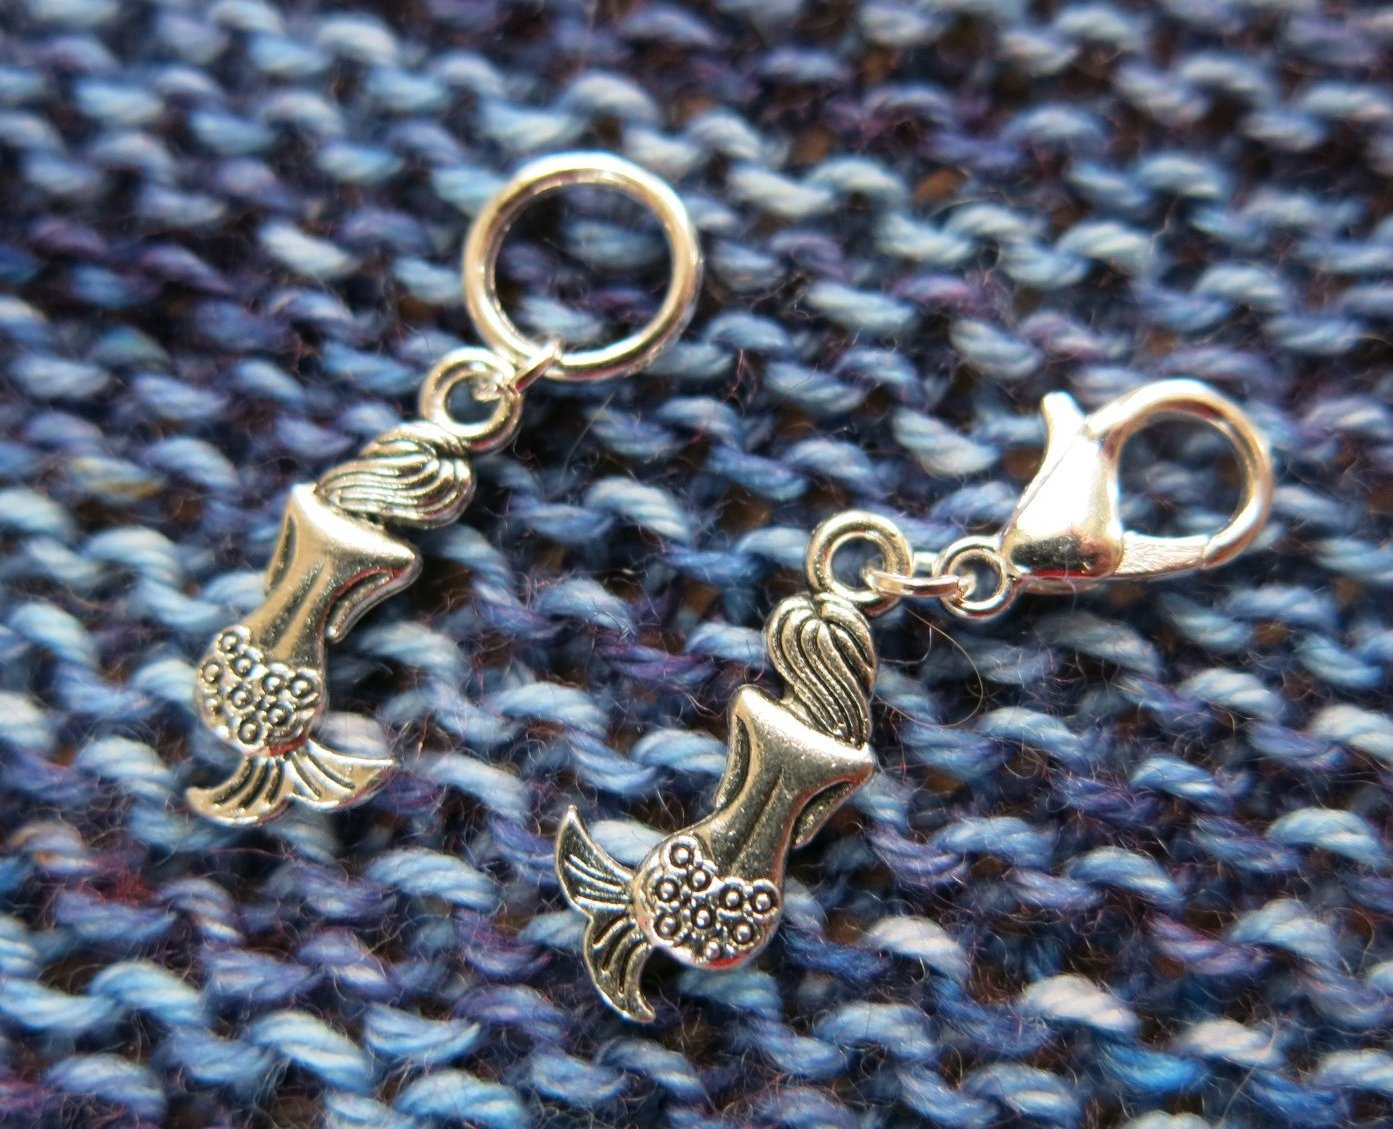 mermaid siren progress keeper stitch markers for knitting and crochet